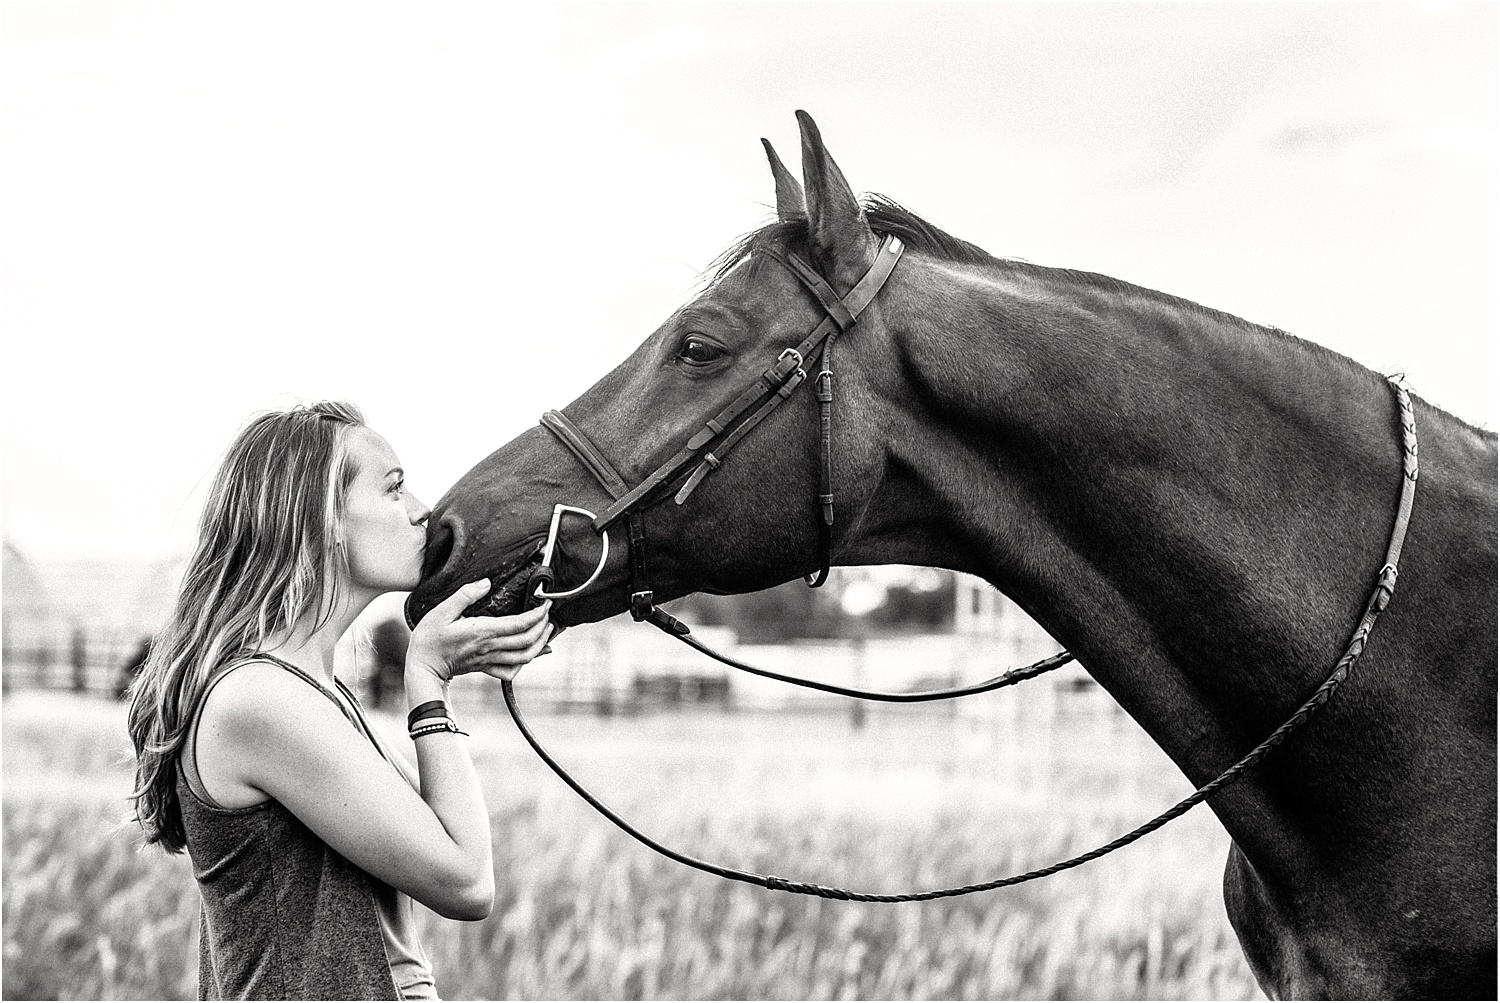 Limbo_Blog_Stomp_Horse_Photography_Equine_Warmblood_Portraits_005.jpg